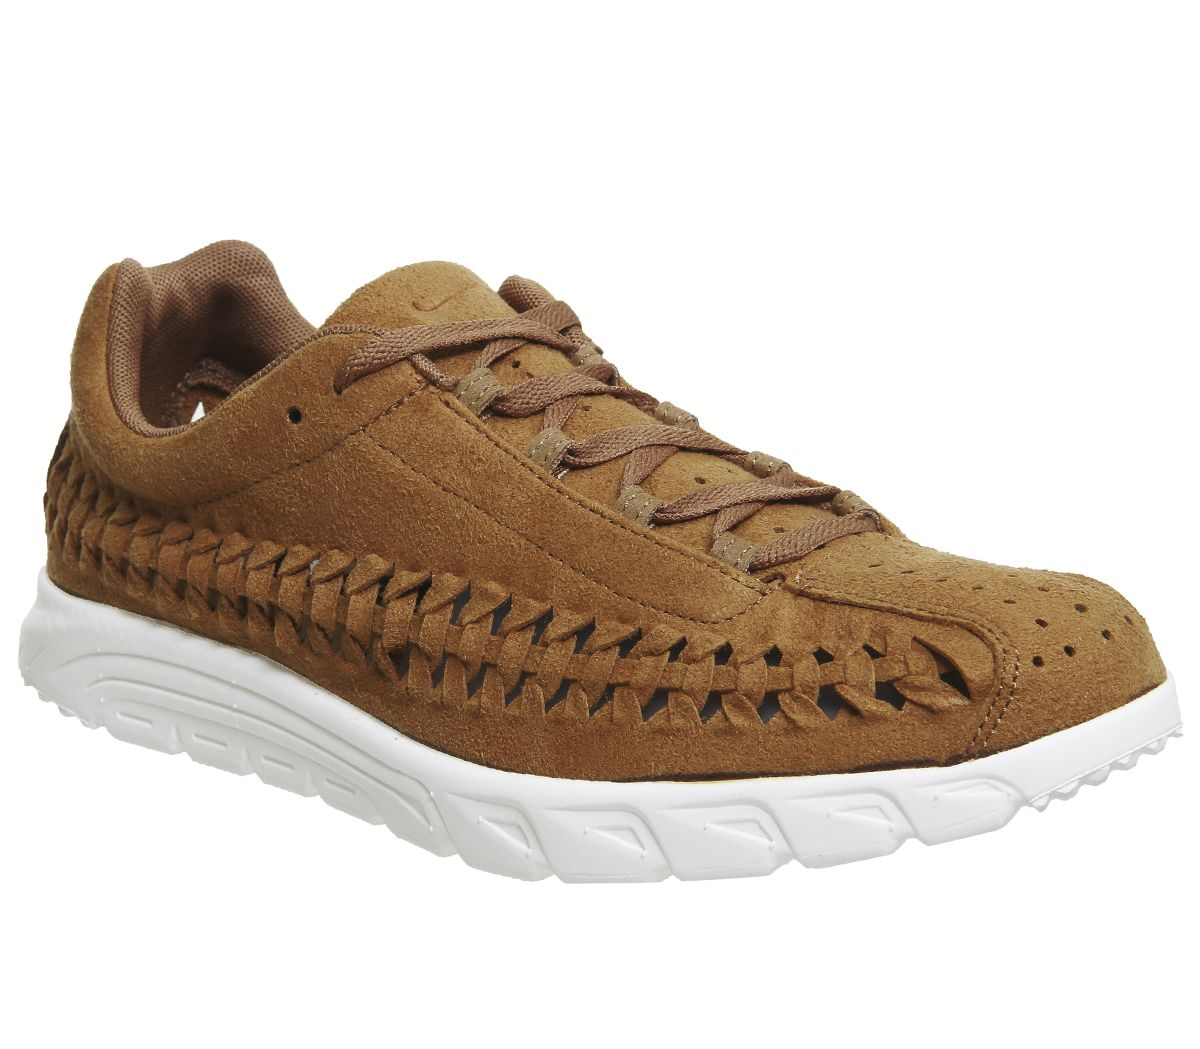 separation shoes 24bef a00e3 Nike Mayfly Woven Trainers Ale Brown Sail - Hers trainers